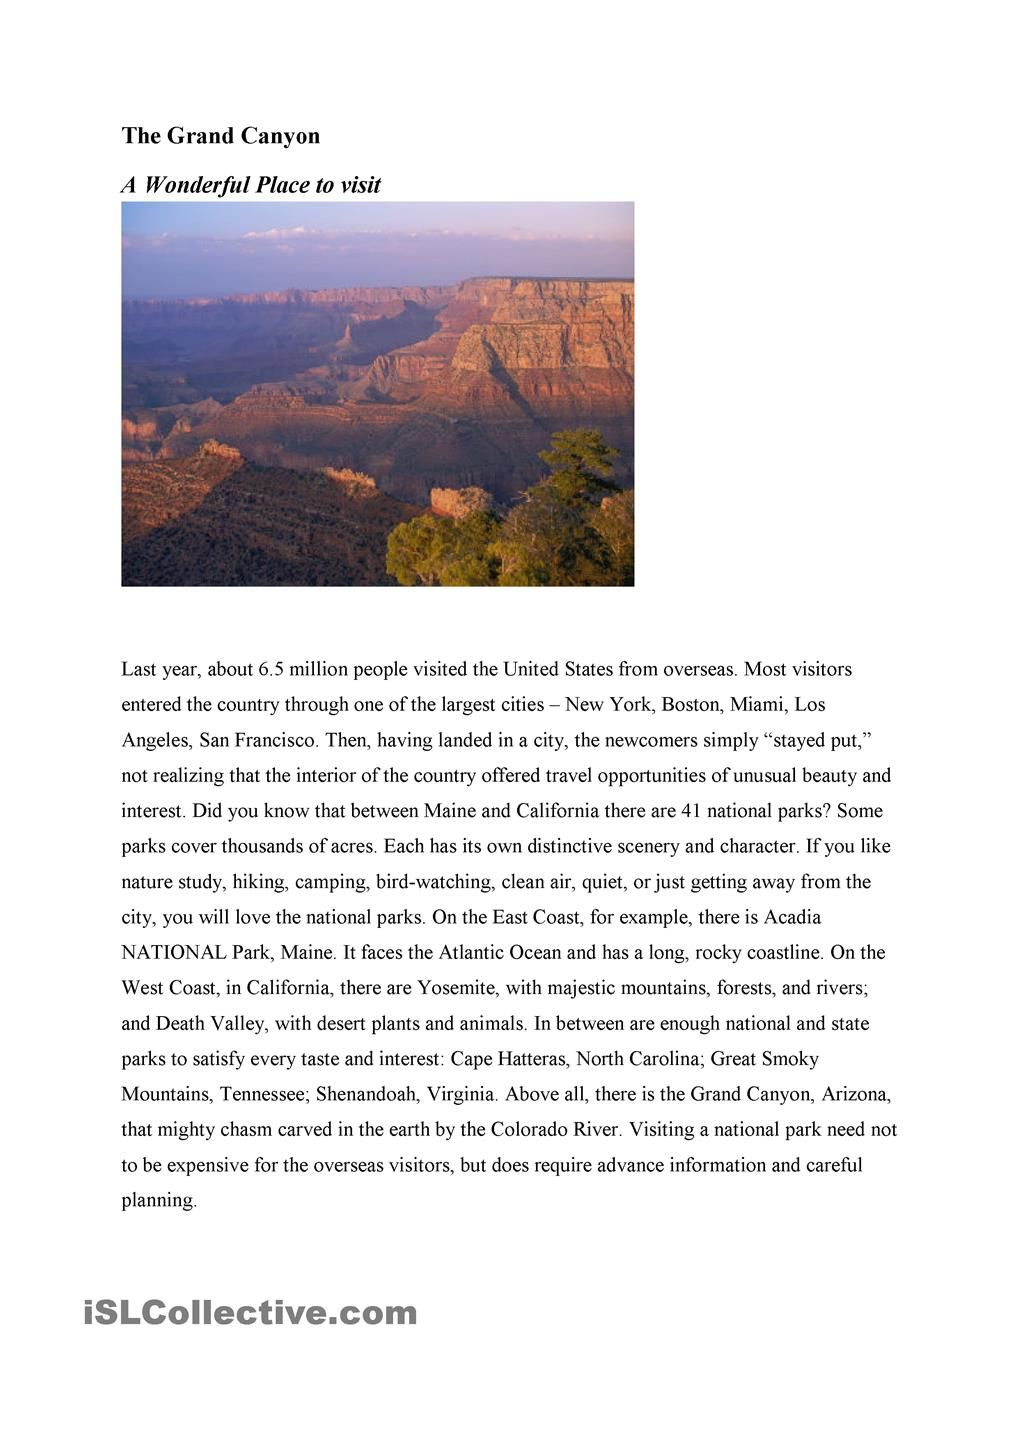 Workbooks reading comprehension worksheets for advanced esl students : Grand Canyon - a reading comprehension worksheet   Reading ...